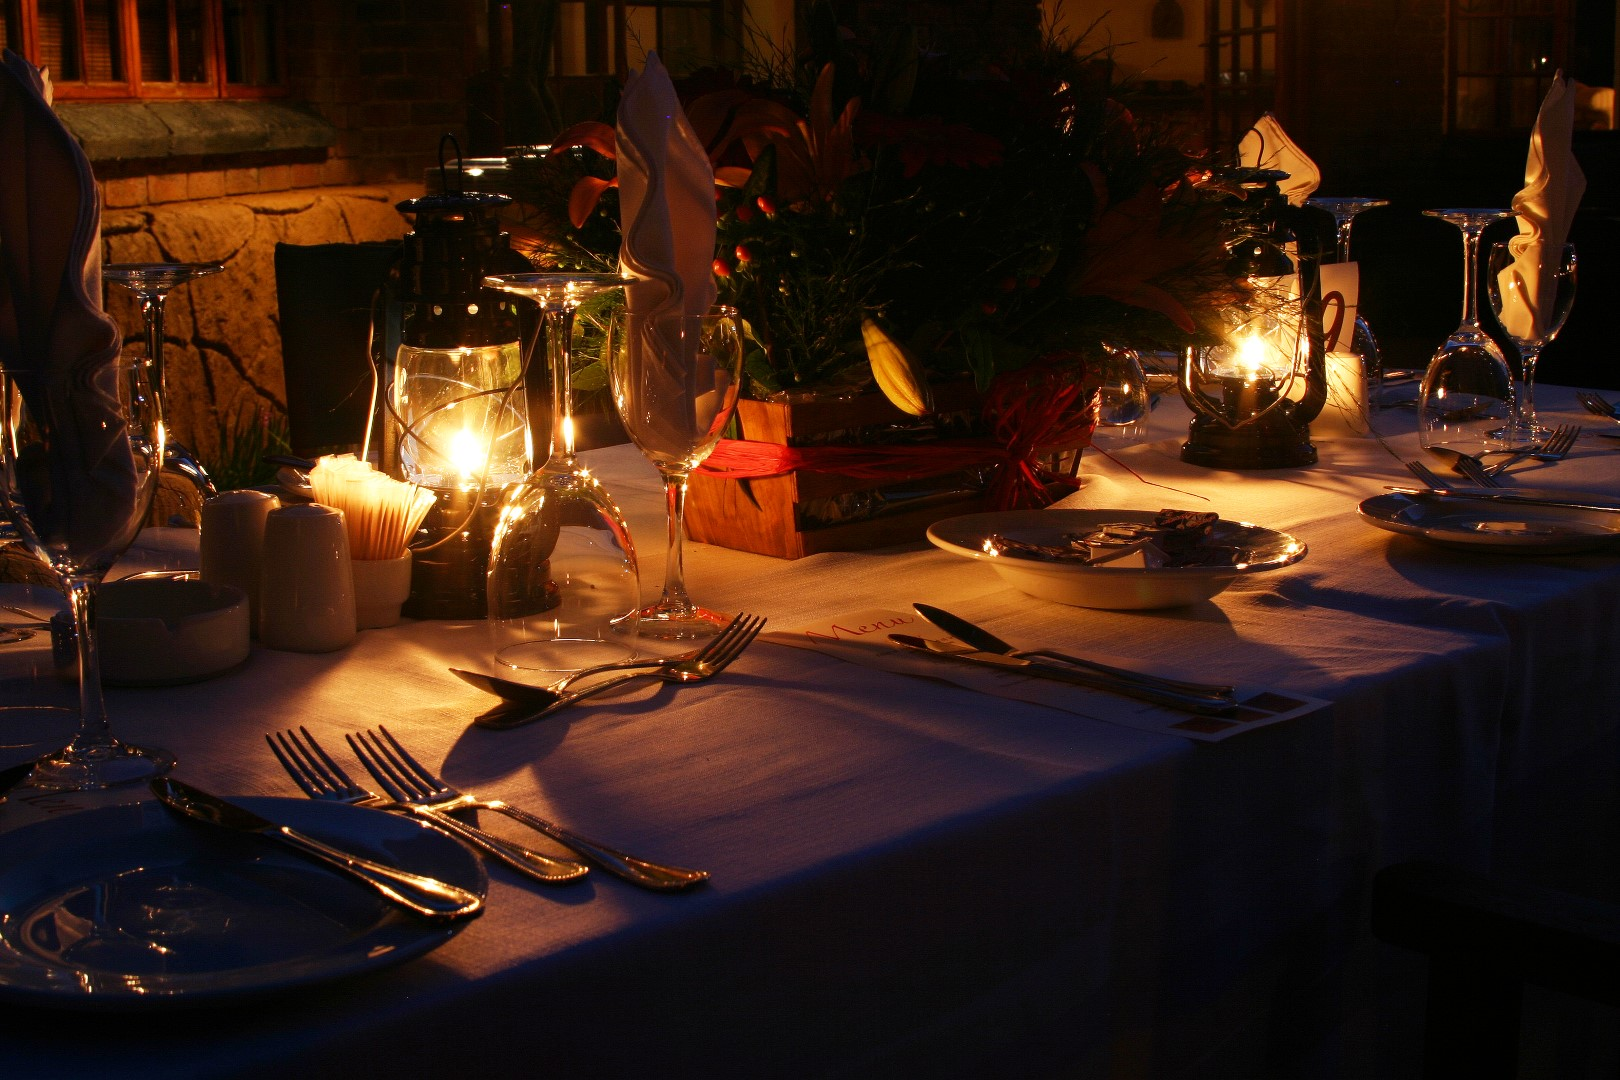 Restaurant De Bralle - diner by candlelight